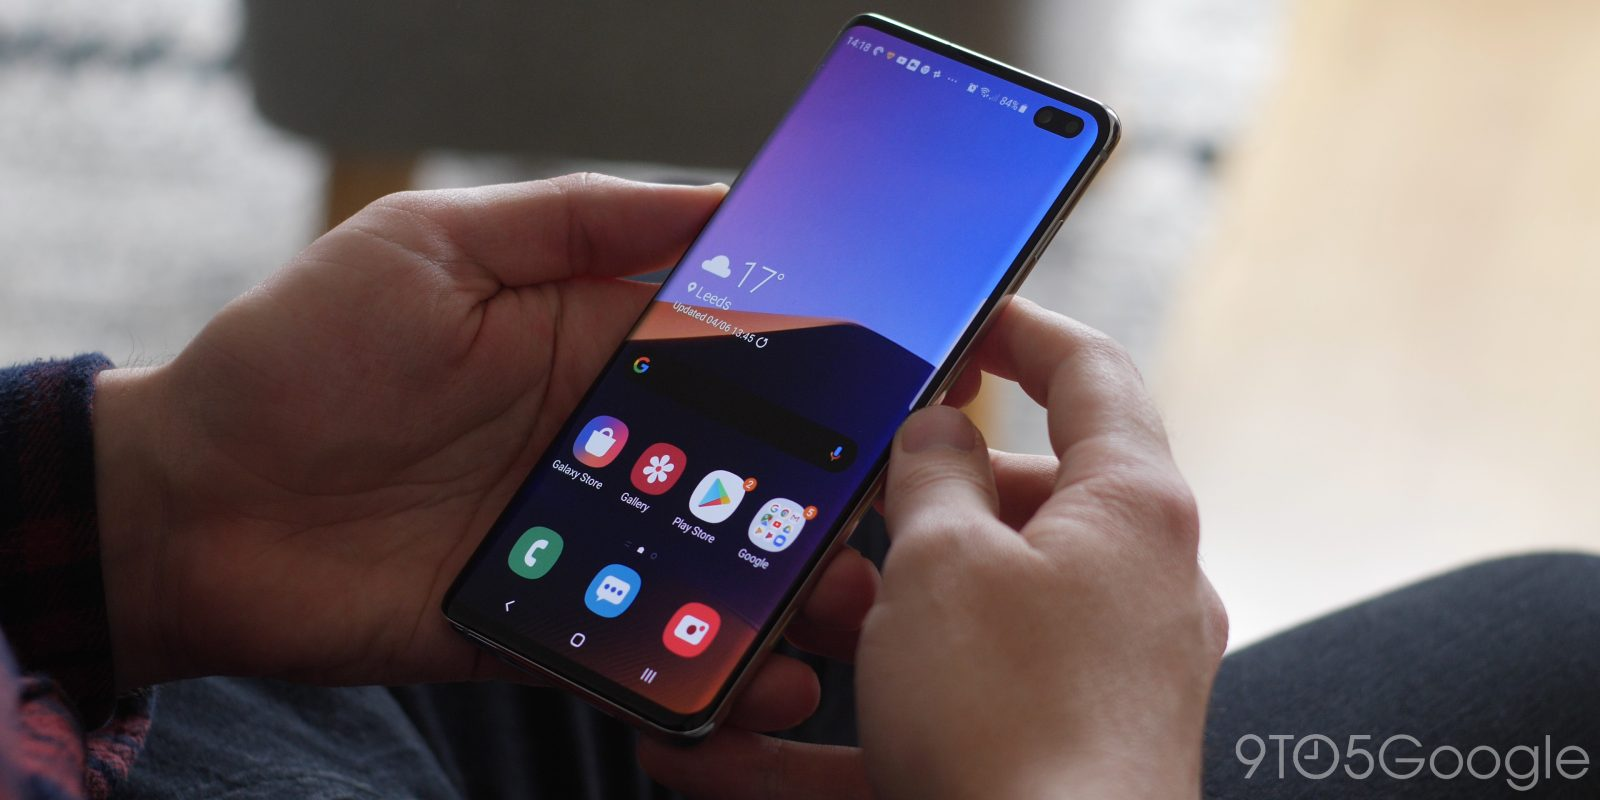 Samsung's Galaxy S10 is $200 off, plus deals on Alpine's Android Auto Receiver, more - 9to5Google